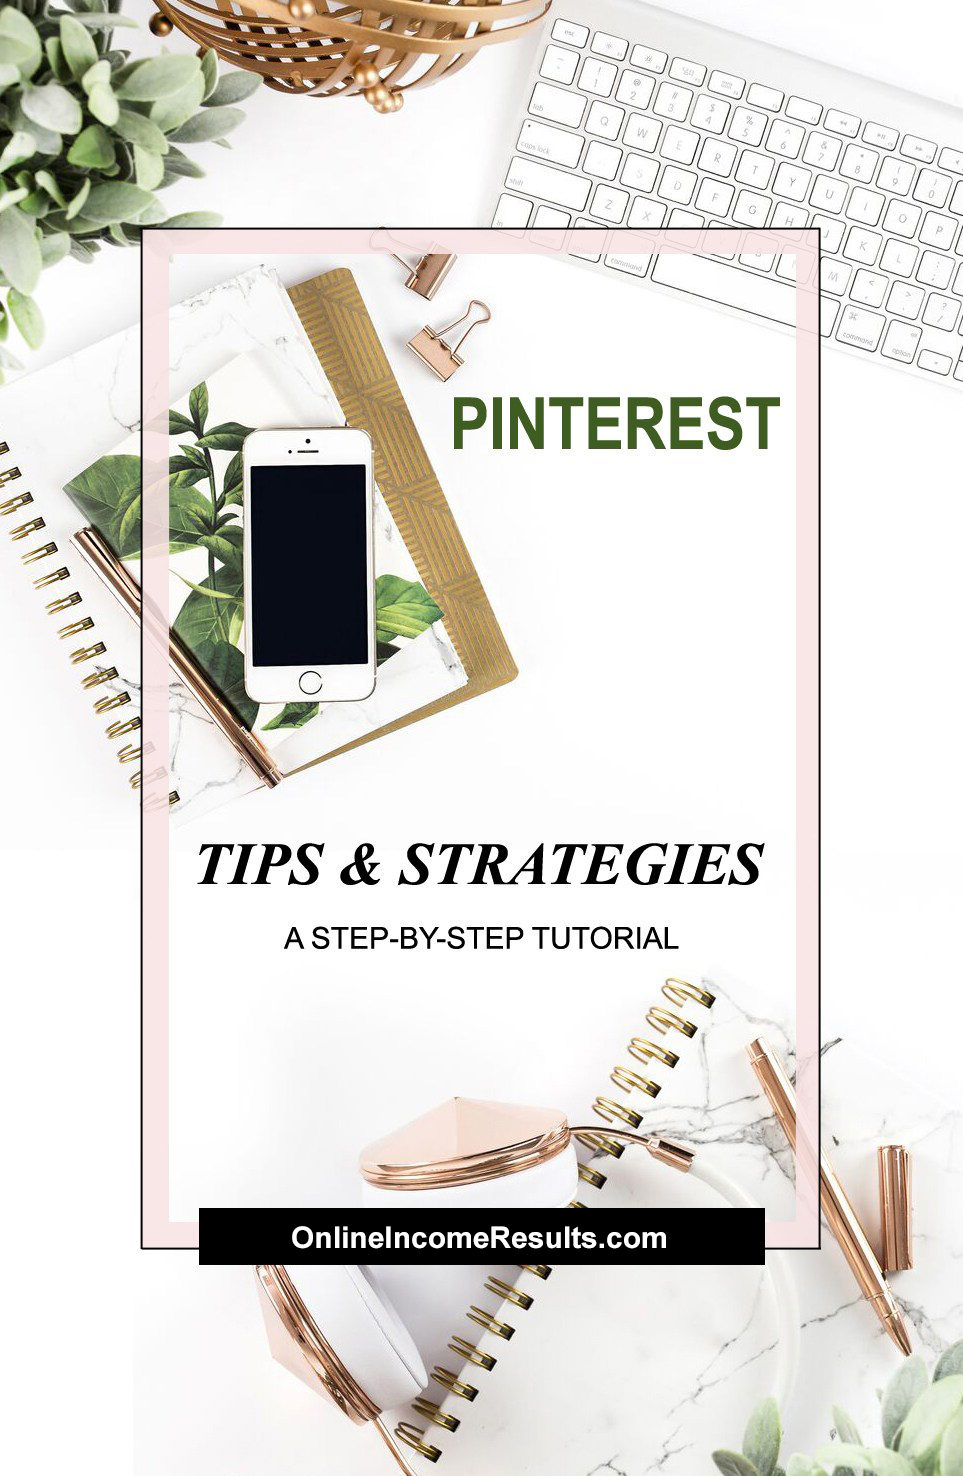 Achieve Success with Pinterest